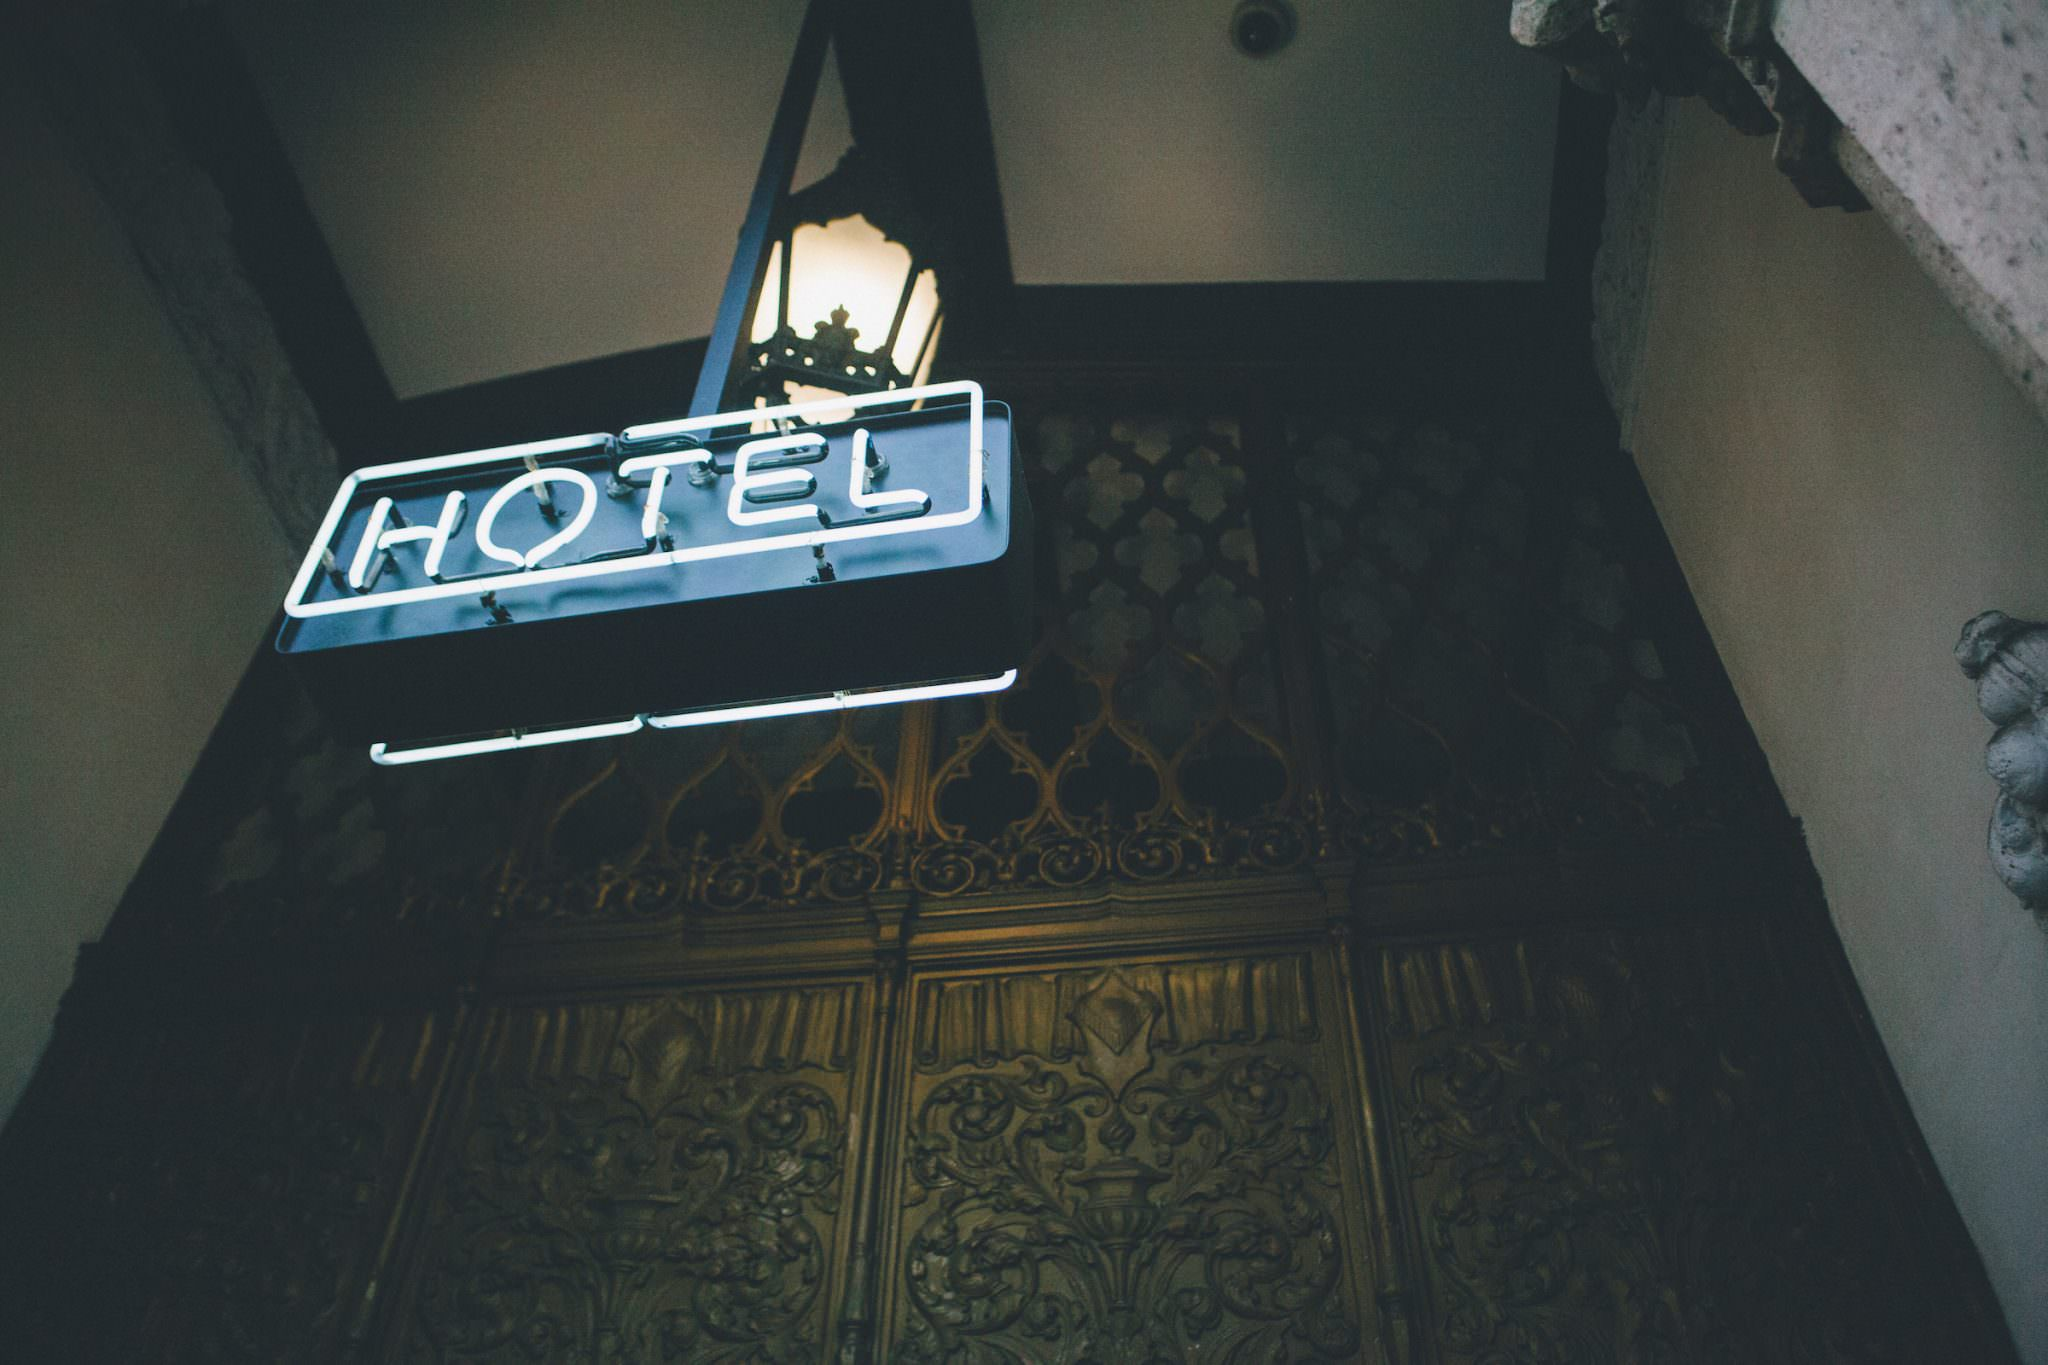 Ace Hotel DTLA | Los Angeles elopement photography planning? | September Pictures